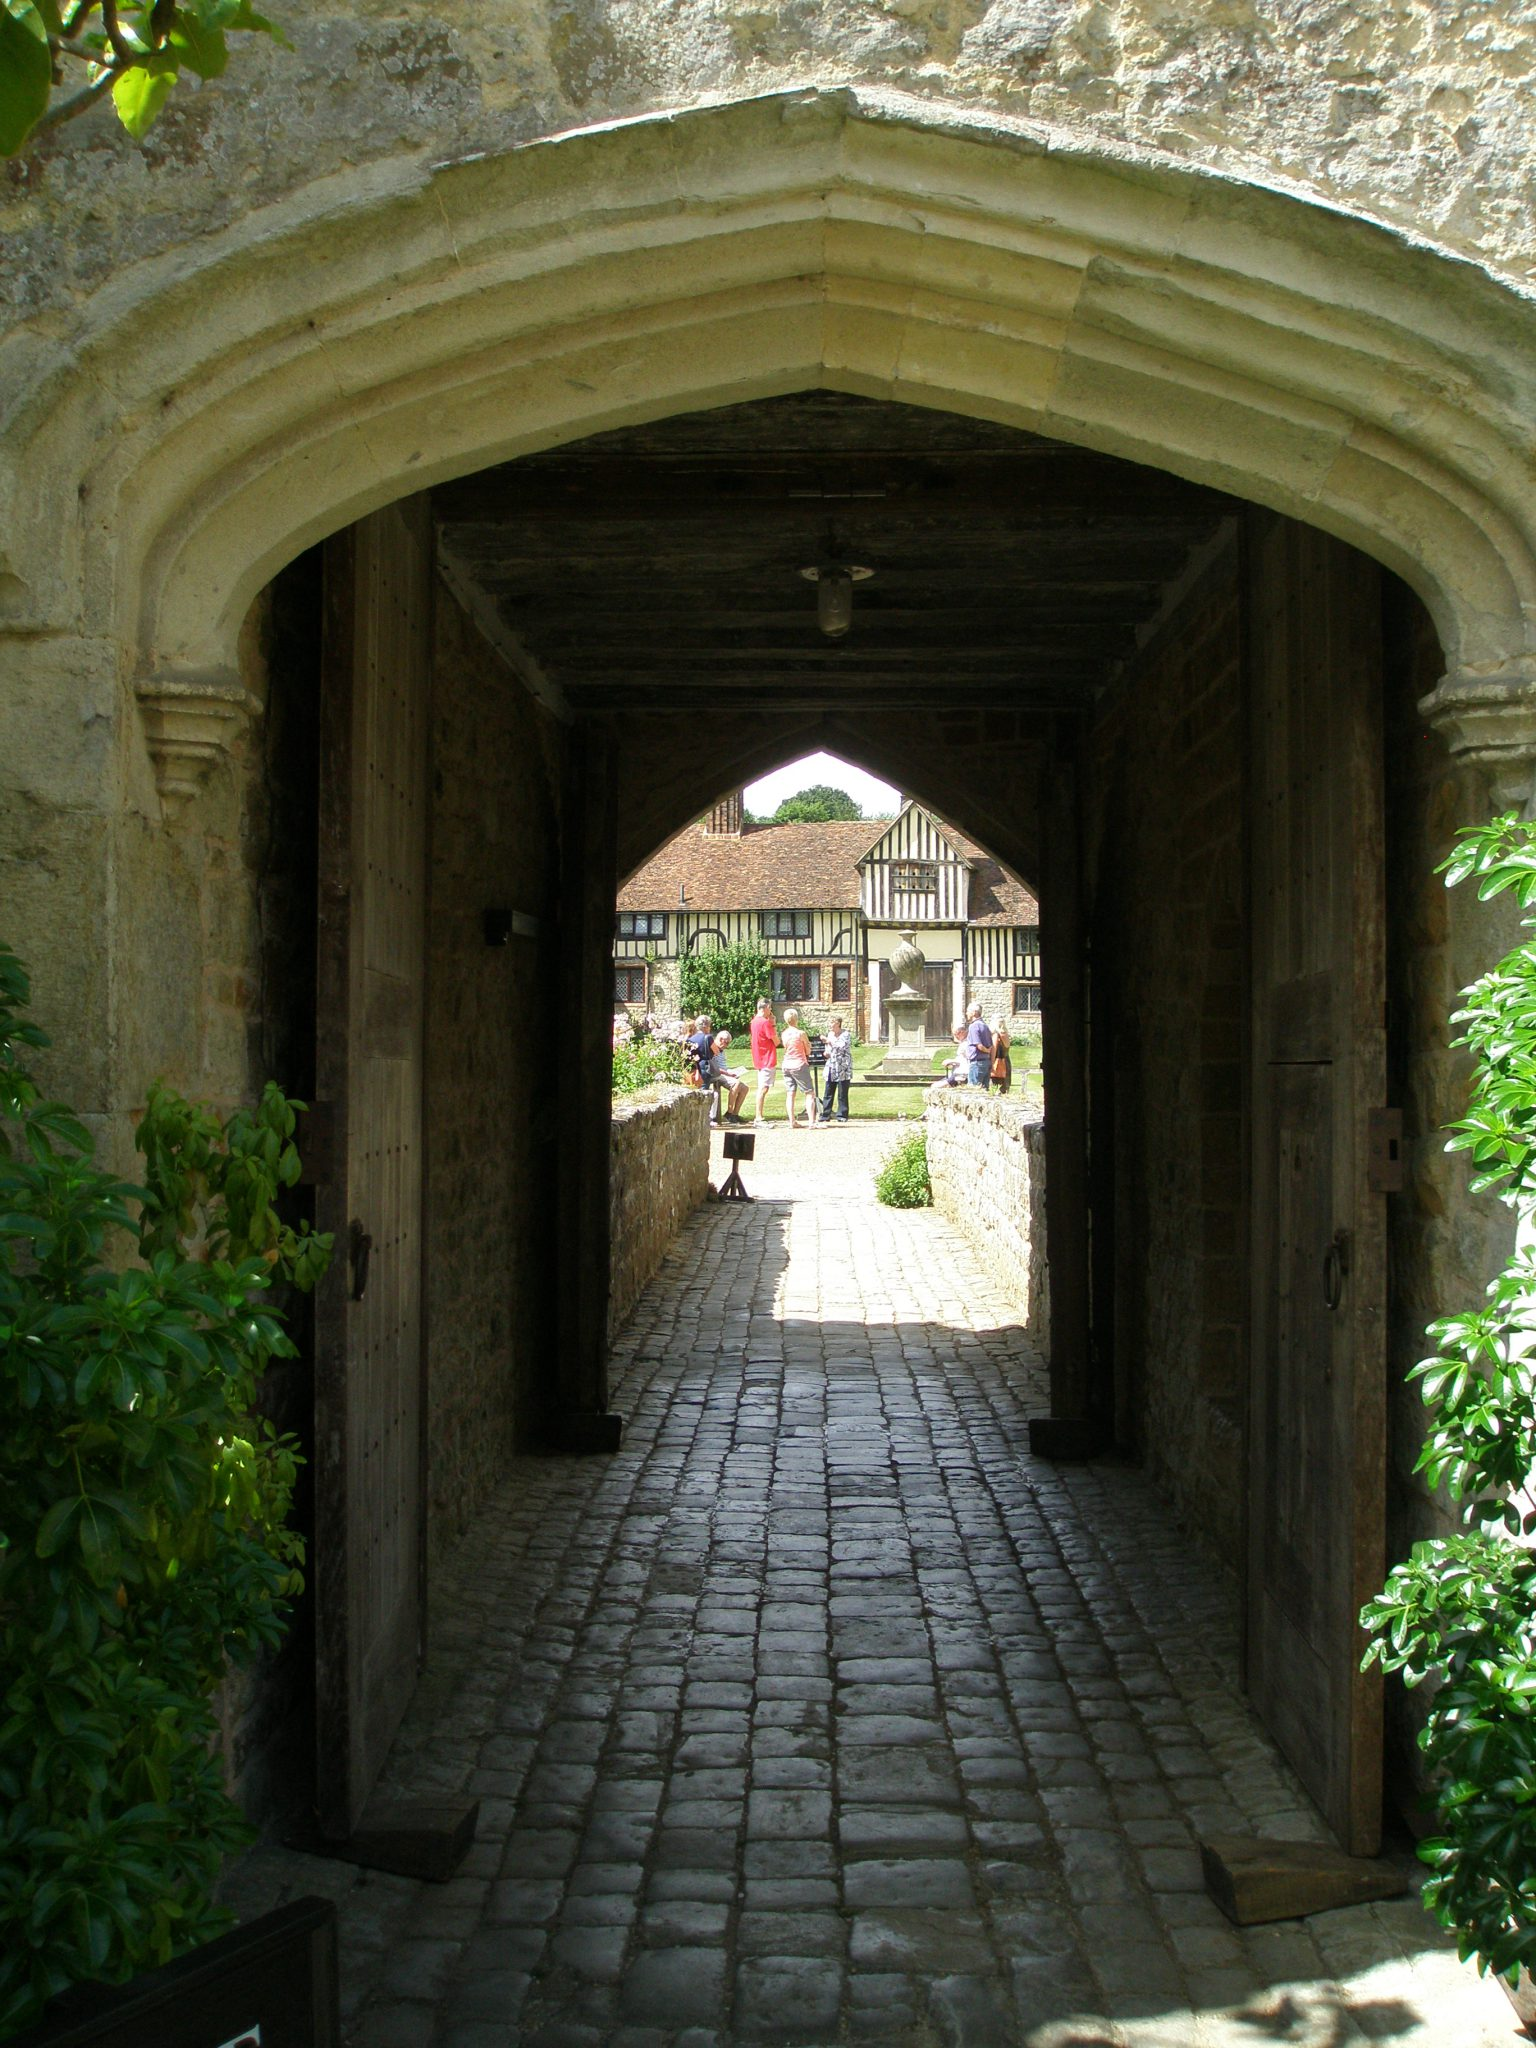 We leave the Courtyard, and head outside over the West Bridge. The Cottages are in the distance.